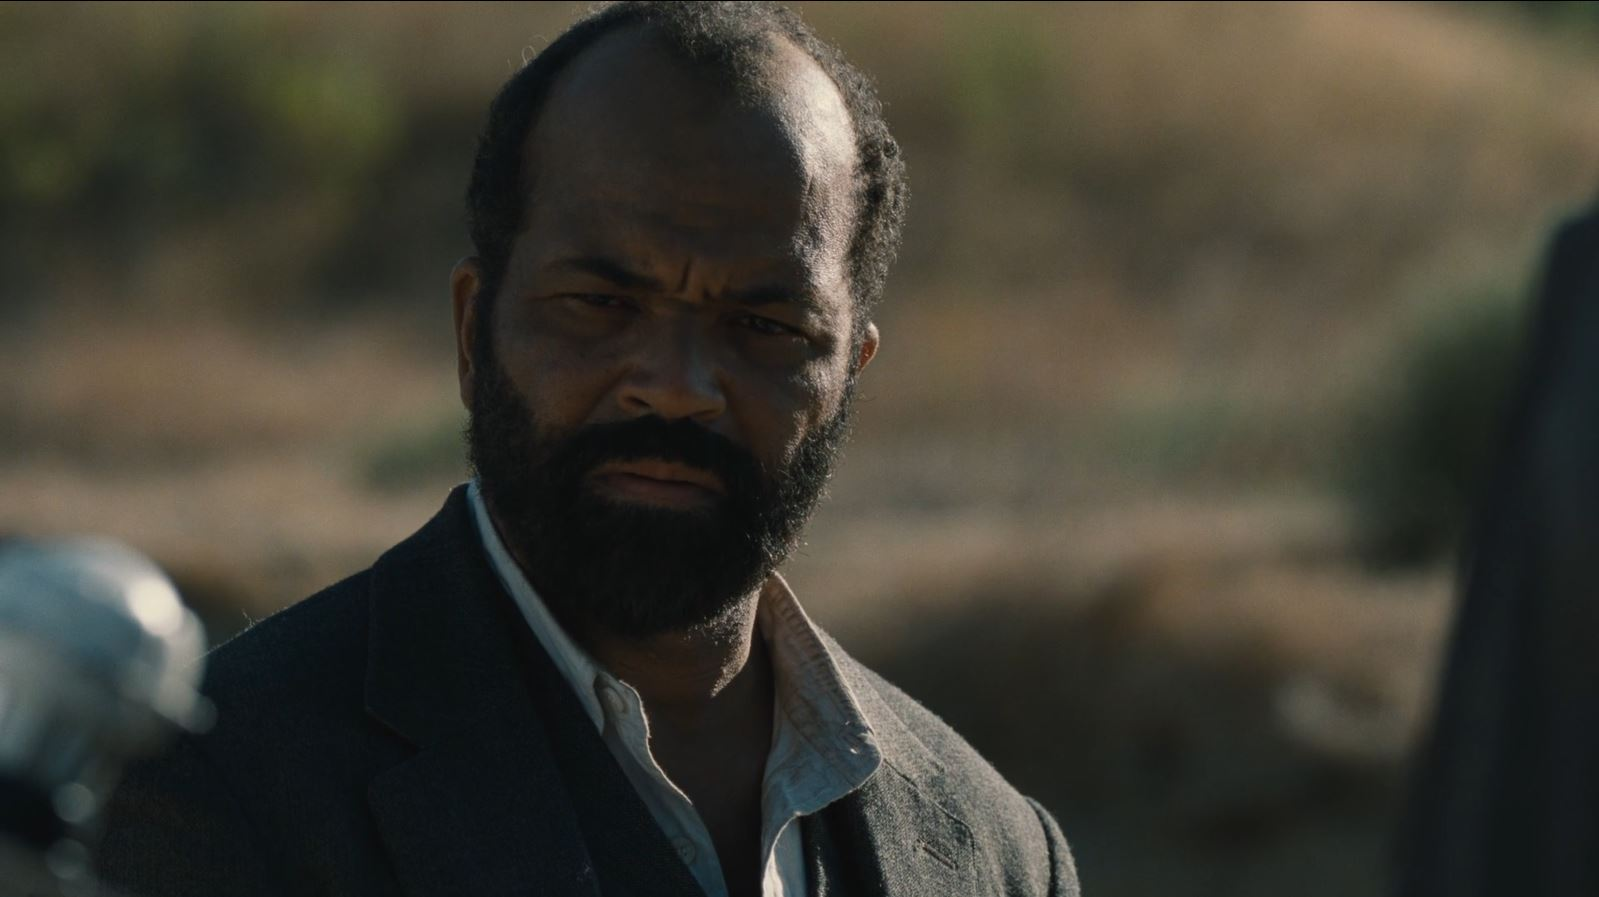 Westworld S02E01 Journey into Night Review - Jeffrey Wright as Bernard